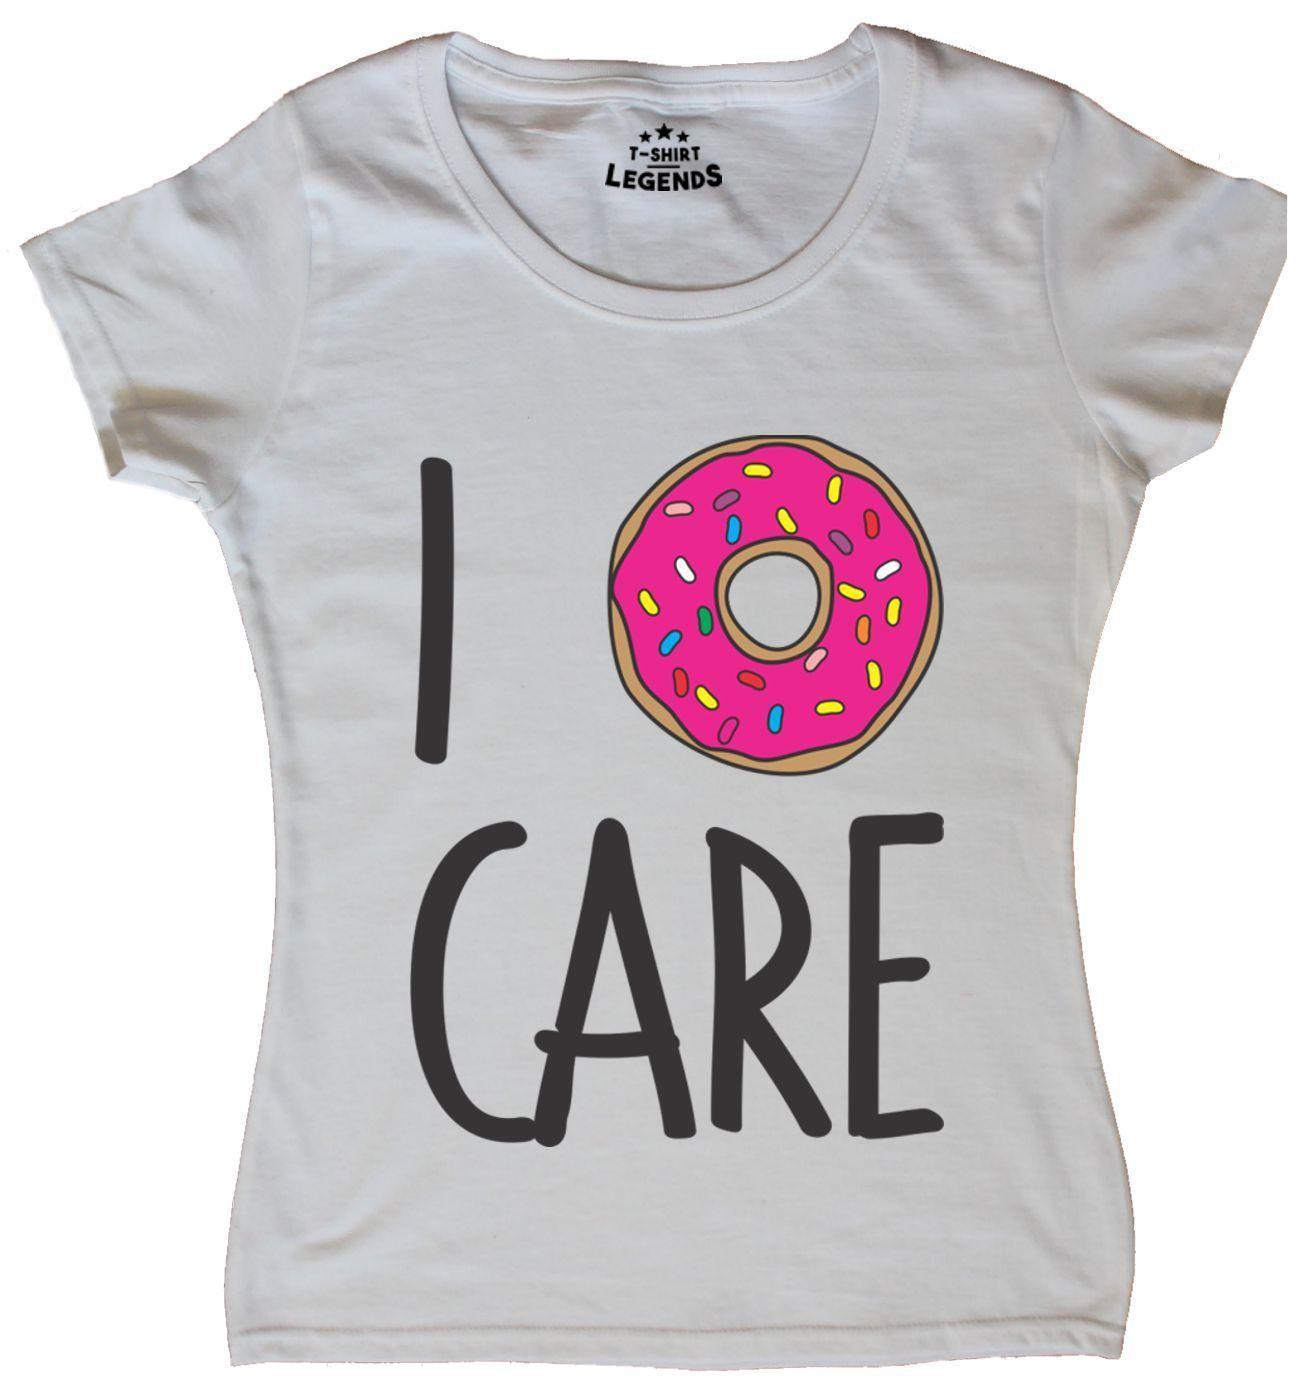 cf865522 Details Zu I Donut Care Funny Female Fit T Shirt Funny Unisex Casual Crazy  T Shirts T Shirt Prints From Vectorbombb, $12.96| DHgate.Com